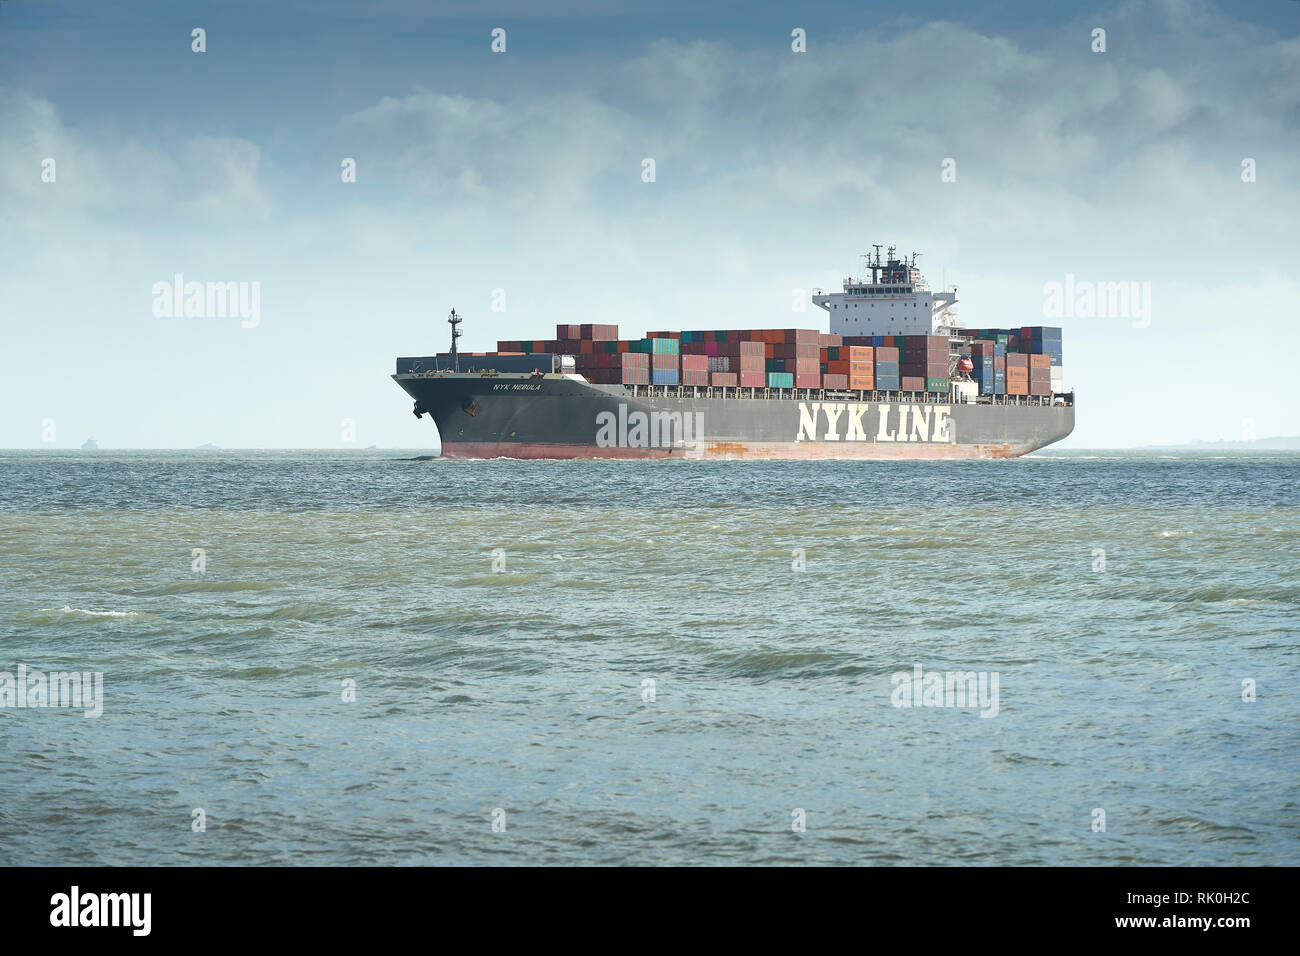 NYK LINE Container Ship, NYK NEBULA, Approaching The Port Of